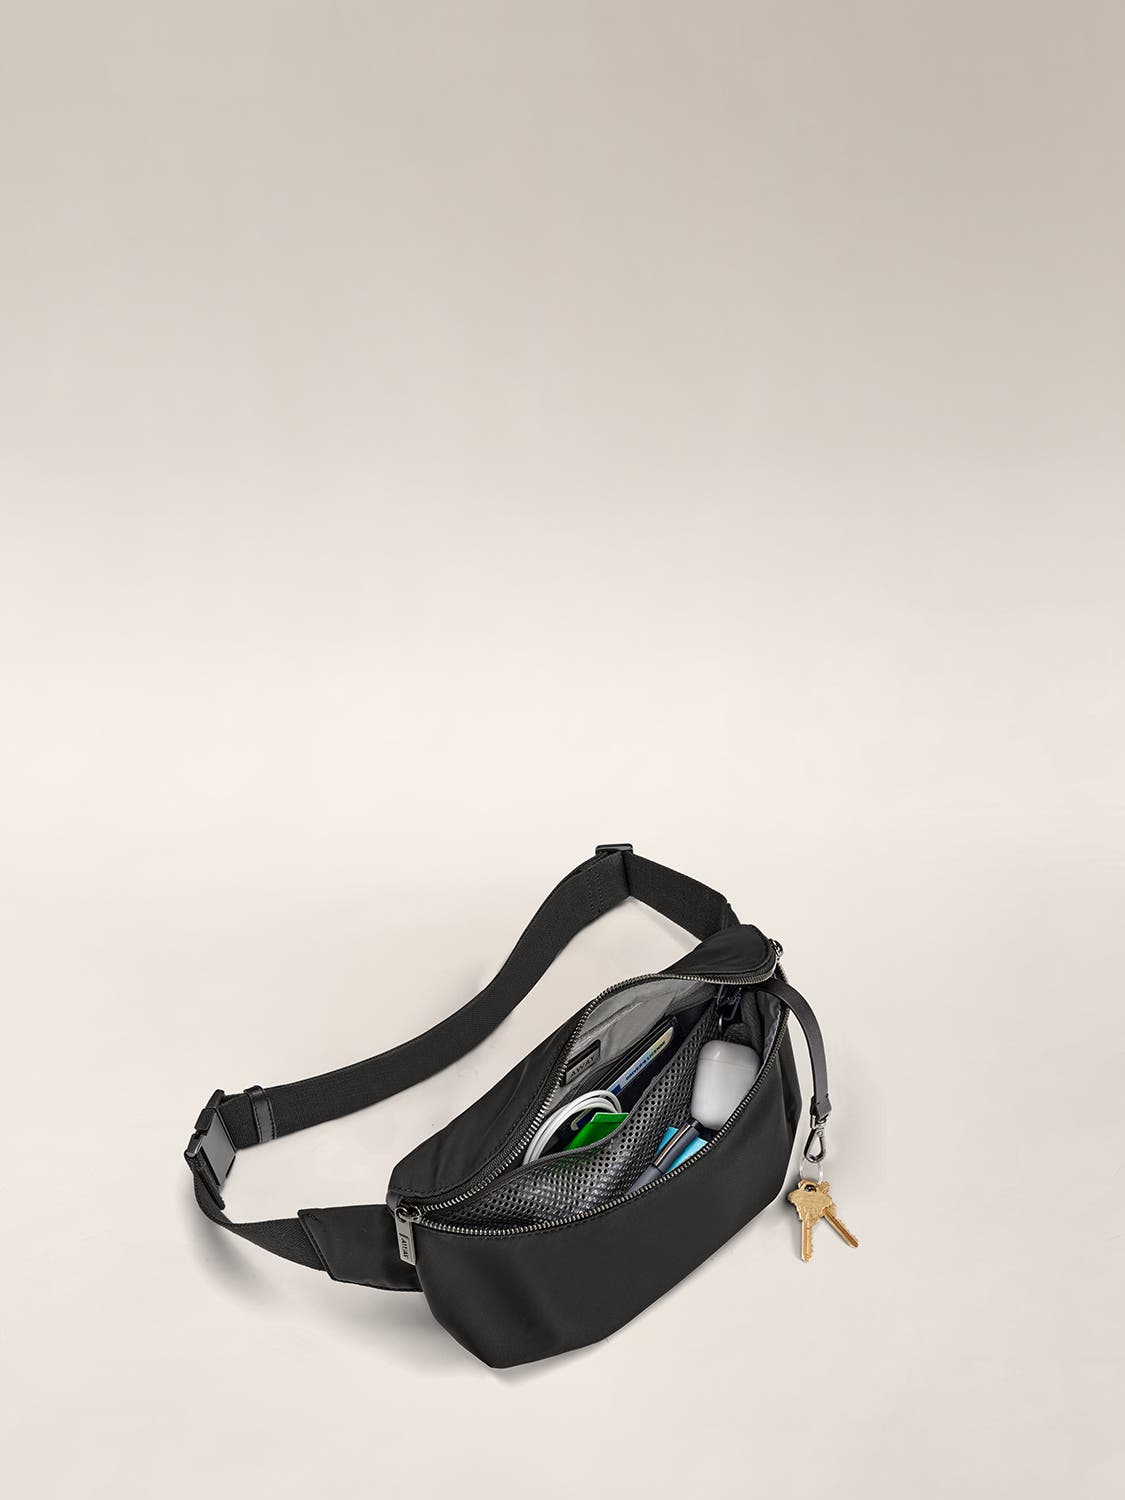 Open view of a black fanny pack with wire cable, pen and more organized in internal pockets.